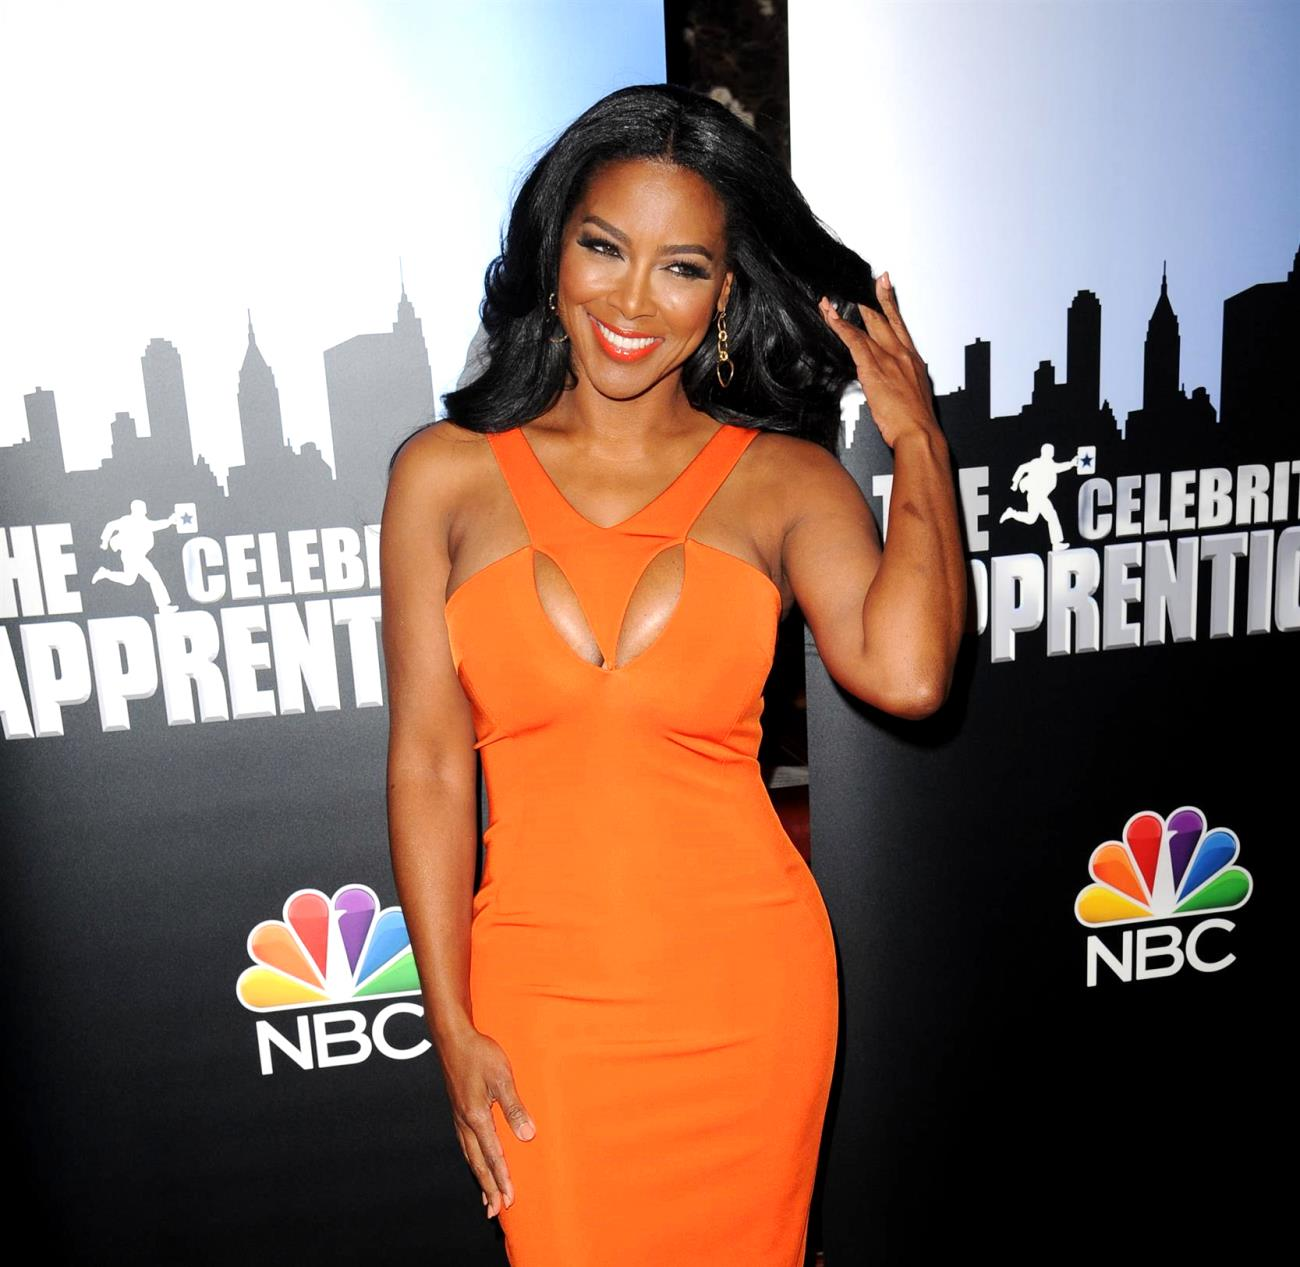 Kenya Moore Tells Fans To Join Her In Getting Back In Shape - Her Jaw-Dropping Photo Has People Praising Her Looks